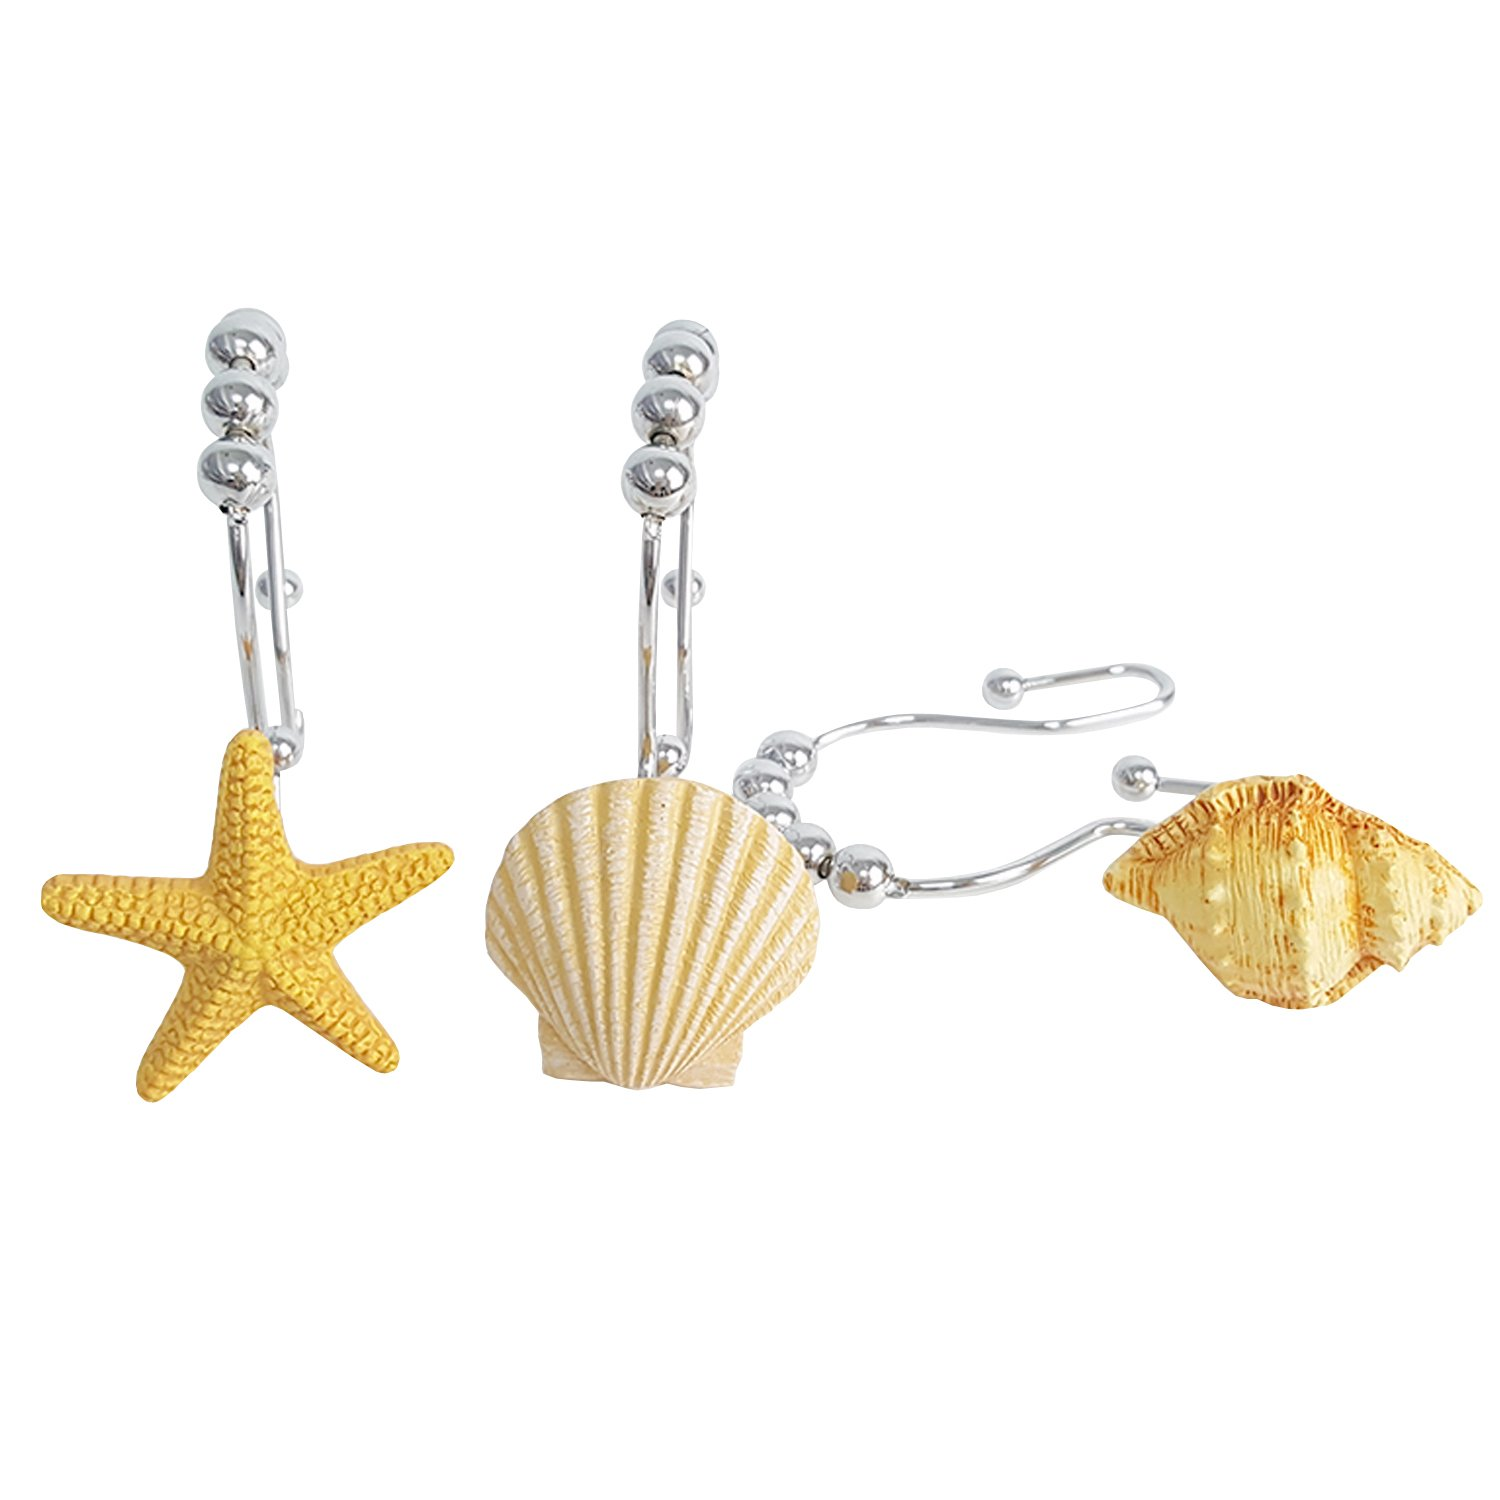 Chictie Shell Stars Roller Balls Shower Curtain Hooks Double Glide Rings Set for Bathroom Linen 100% Stainless Steel Metal Hanger (Yellow shell starfish conch 12 pieces set)